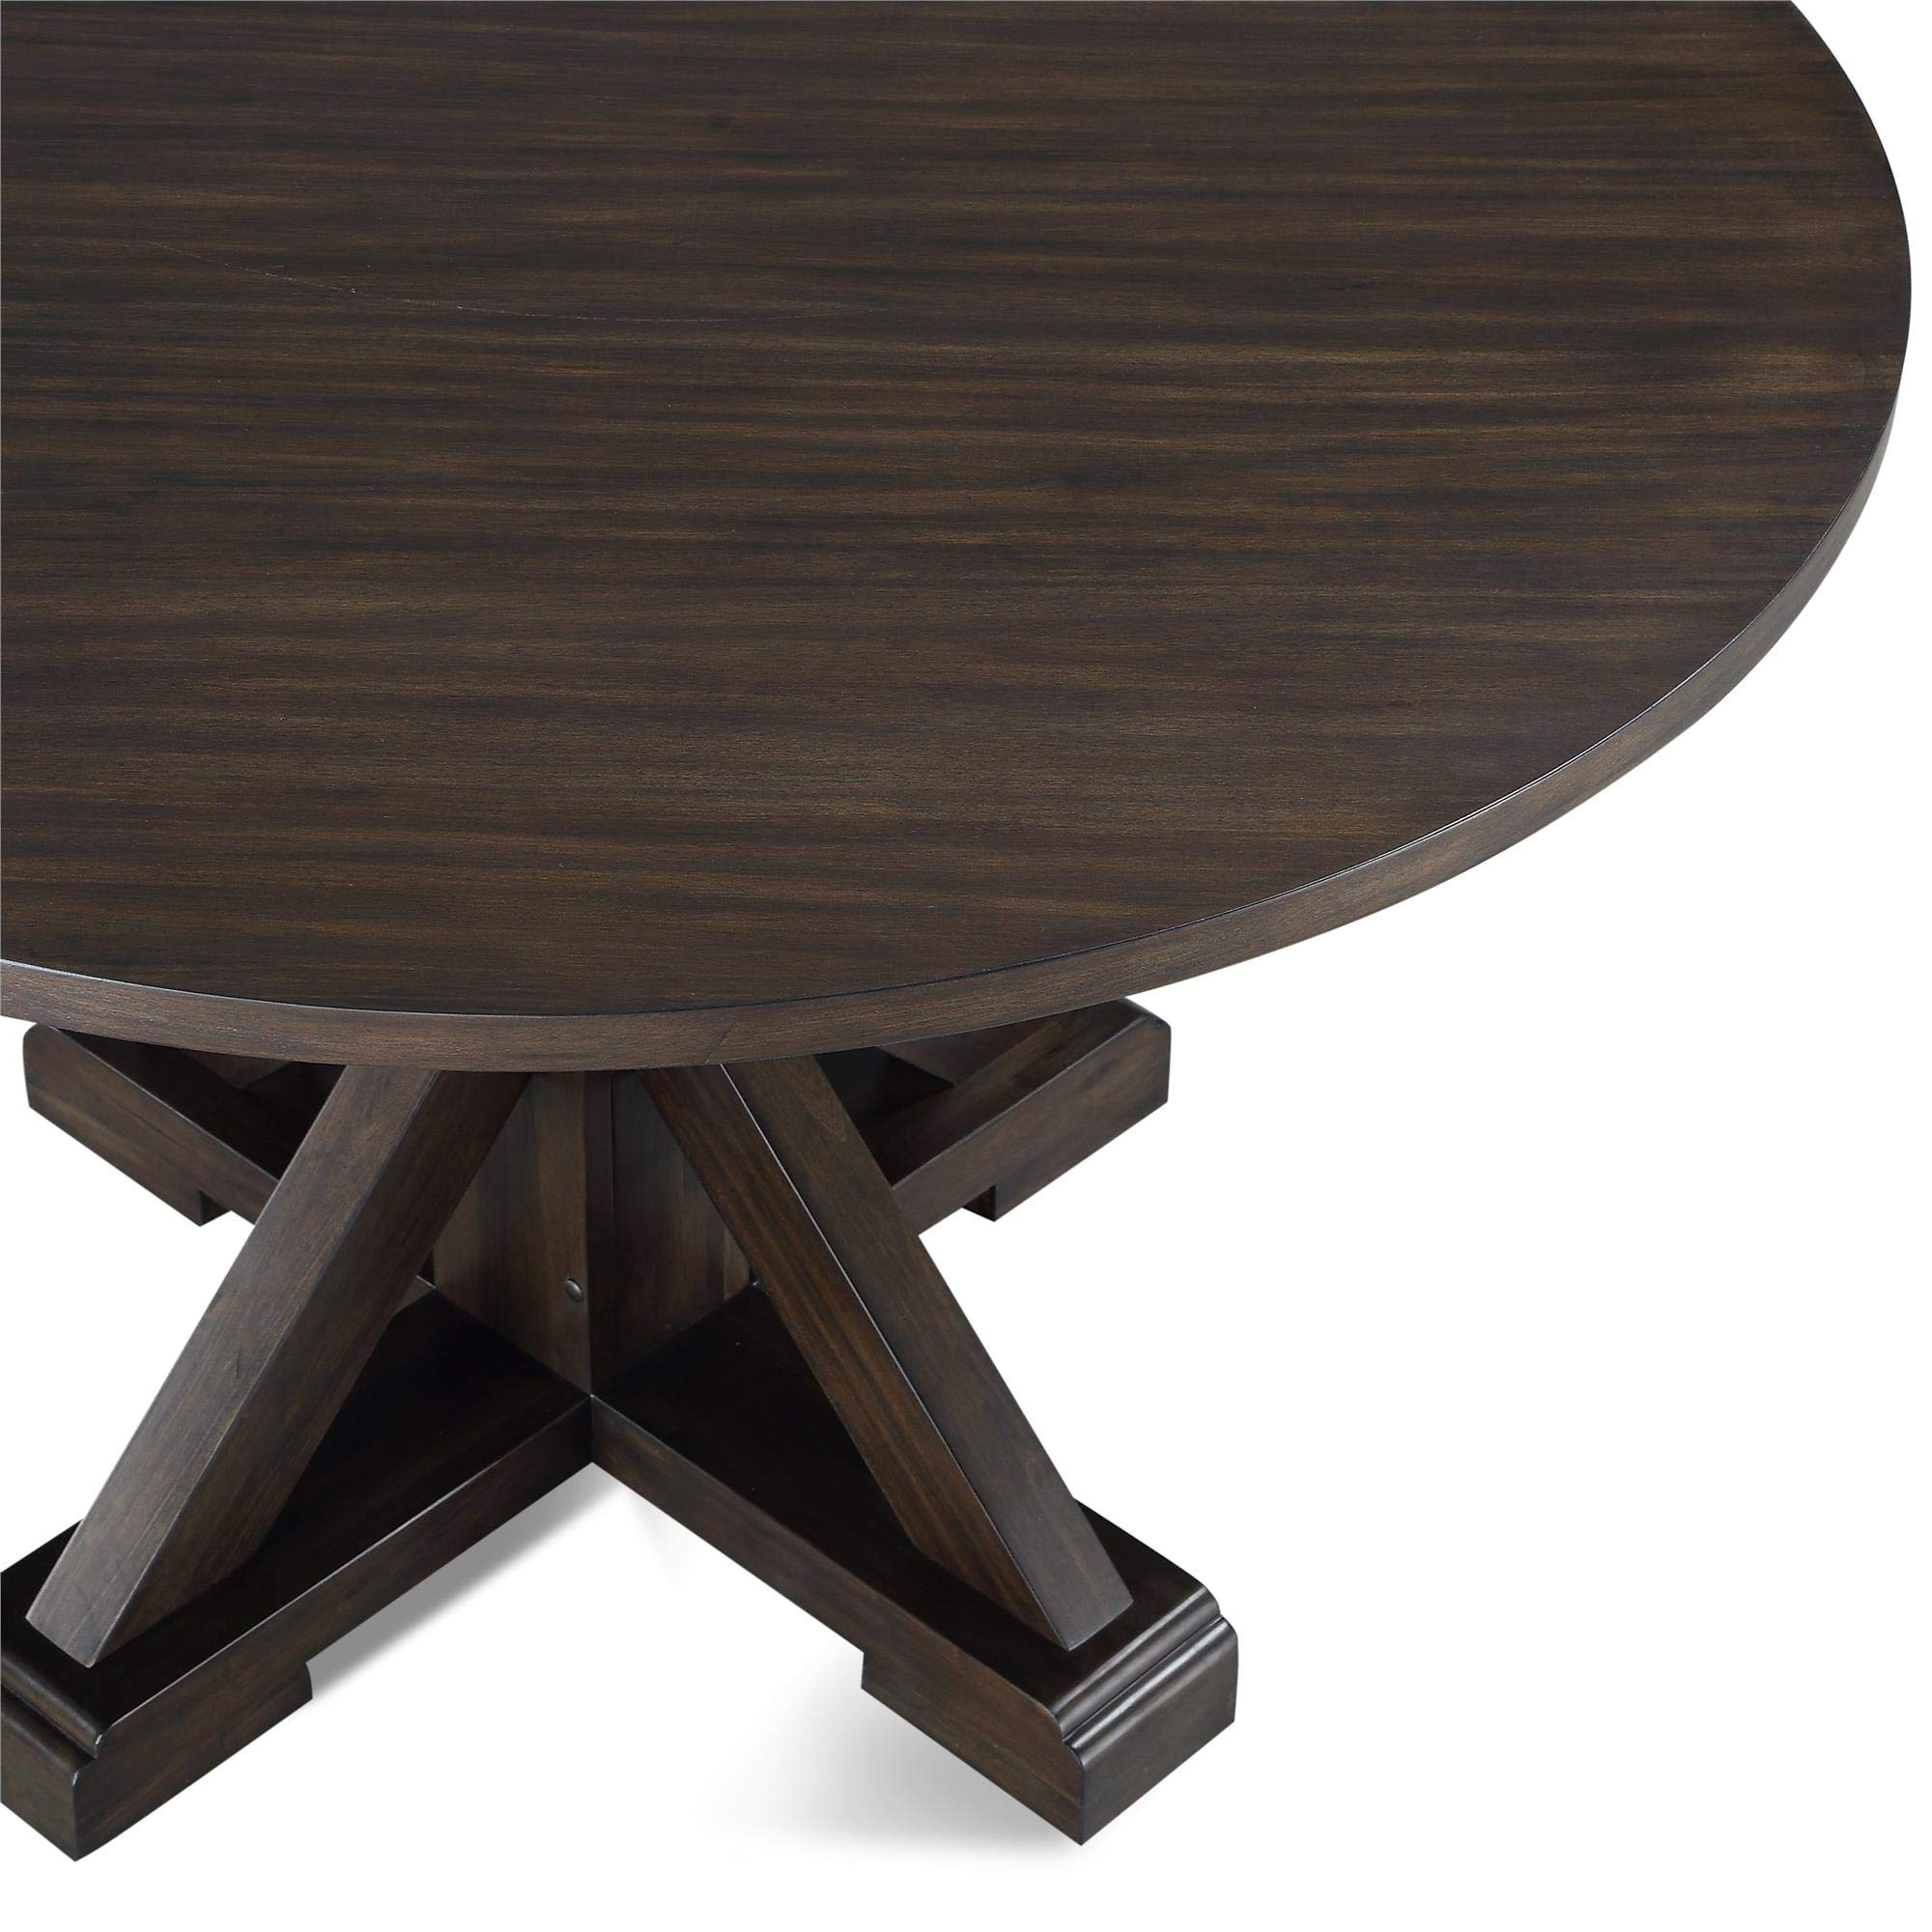 Dorel Living DA8135T Lanley Round, Rustic Brown Dining Table, by Dorel Living (Image #3)